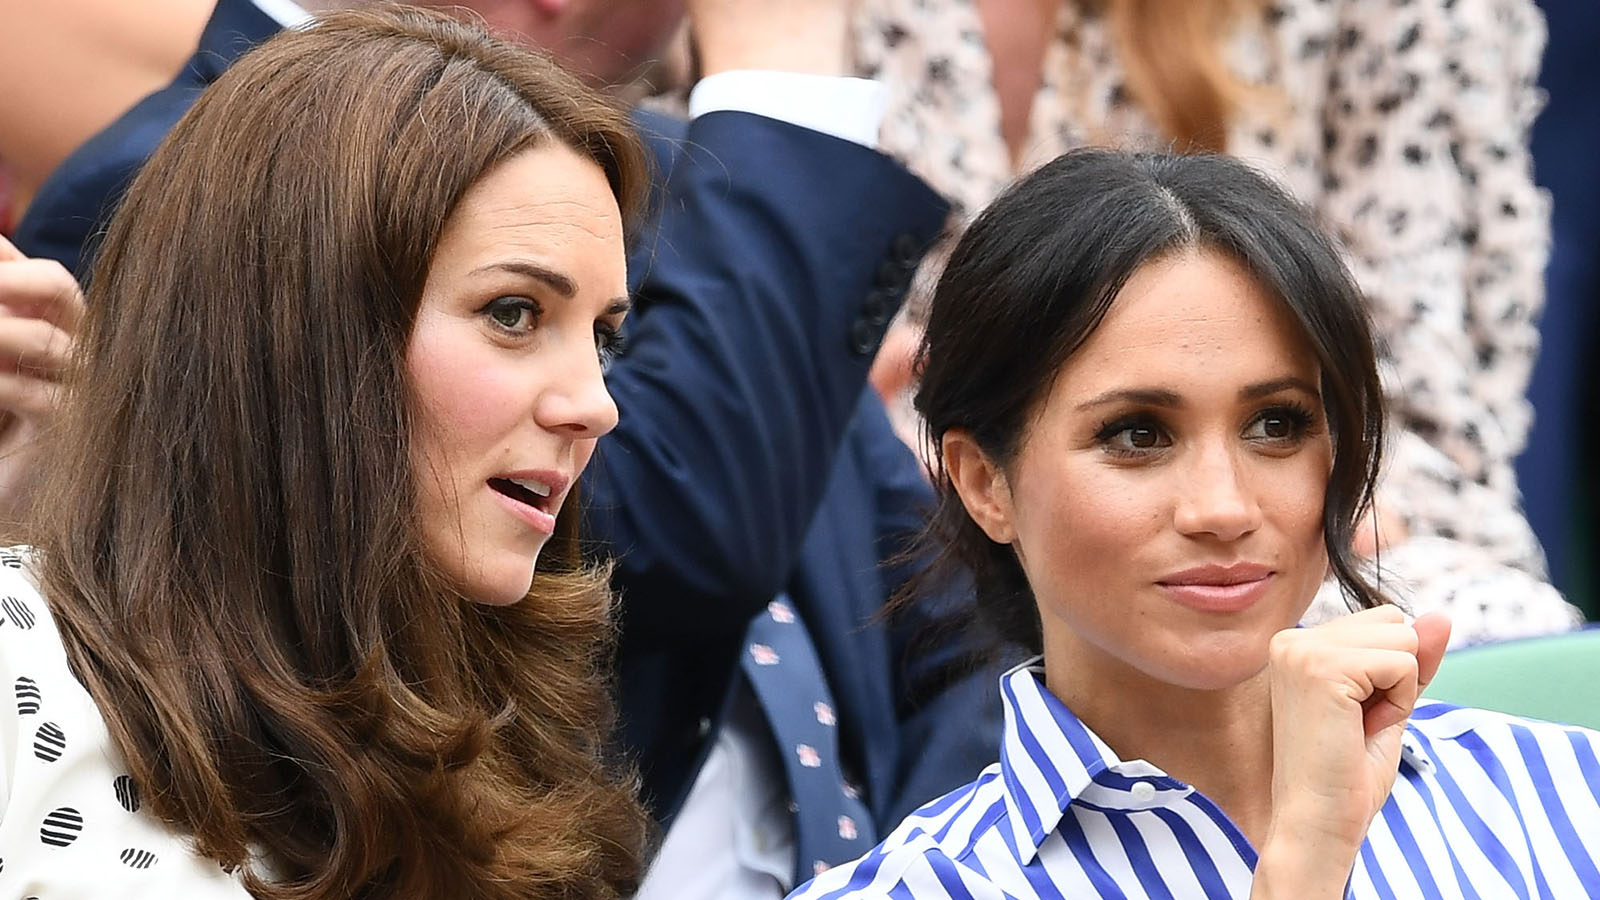 There's One Physical Detail That Meghan And Kate Are Now Both Getting Criticised For - And It's Unbelievable